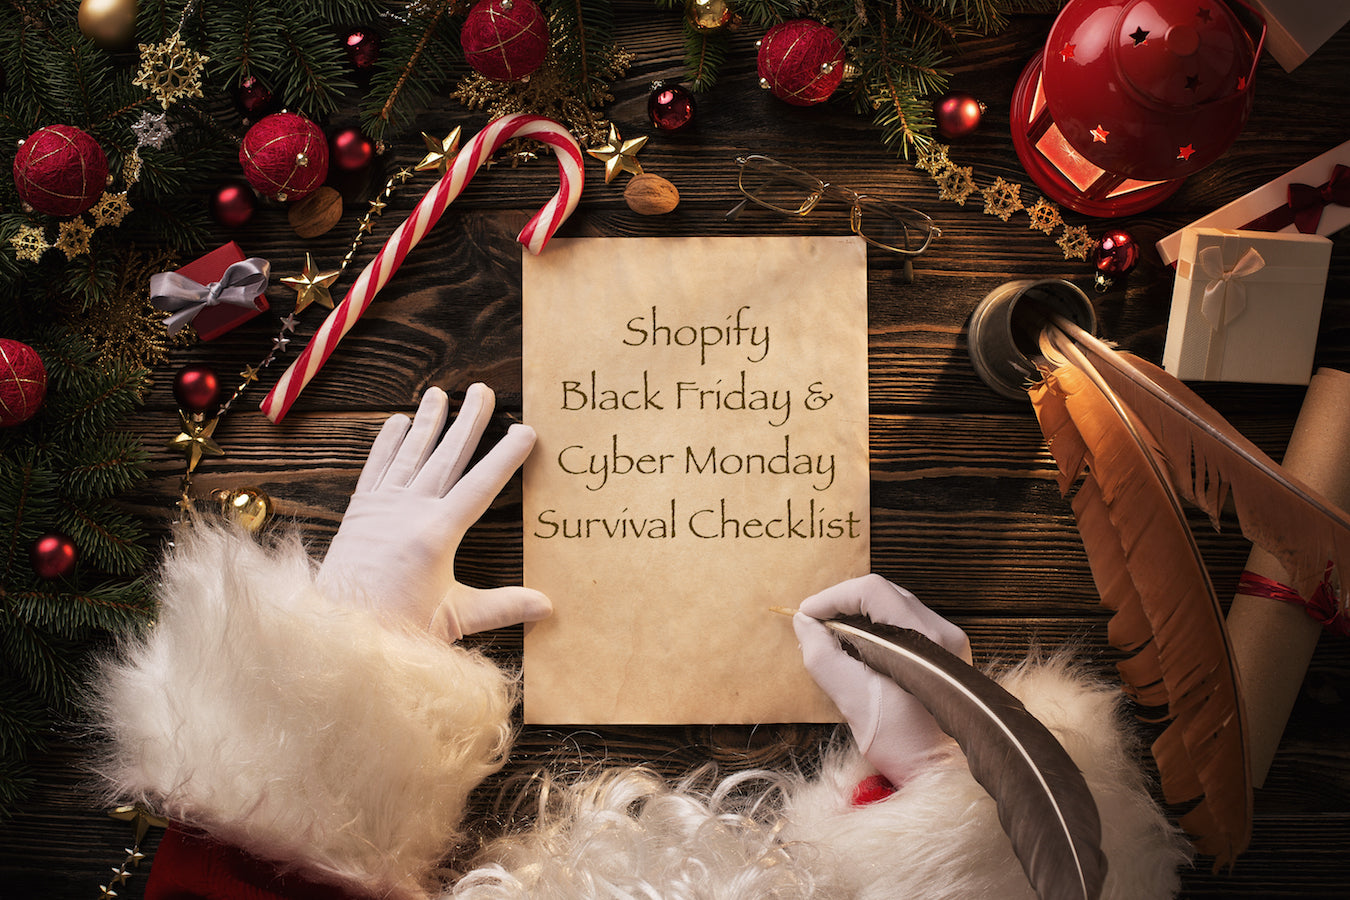 black friday cyber monday 2018 a shopify website survival checklist - Cyber Monday Christmas Decorations